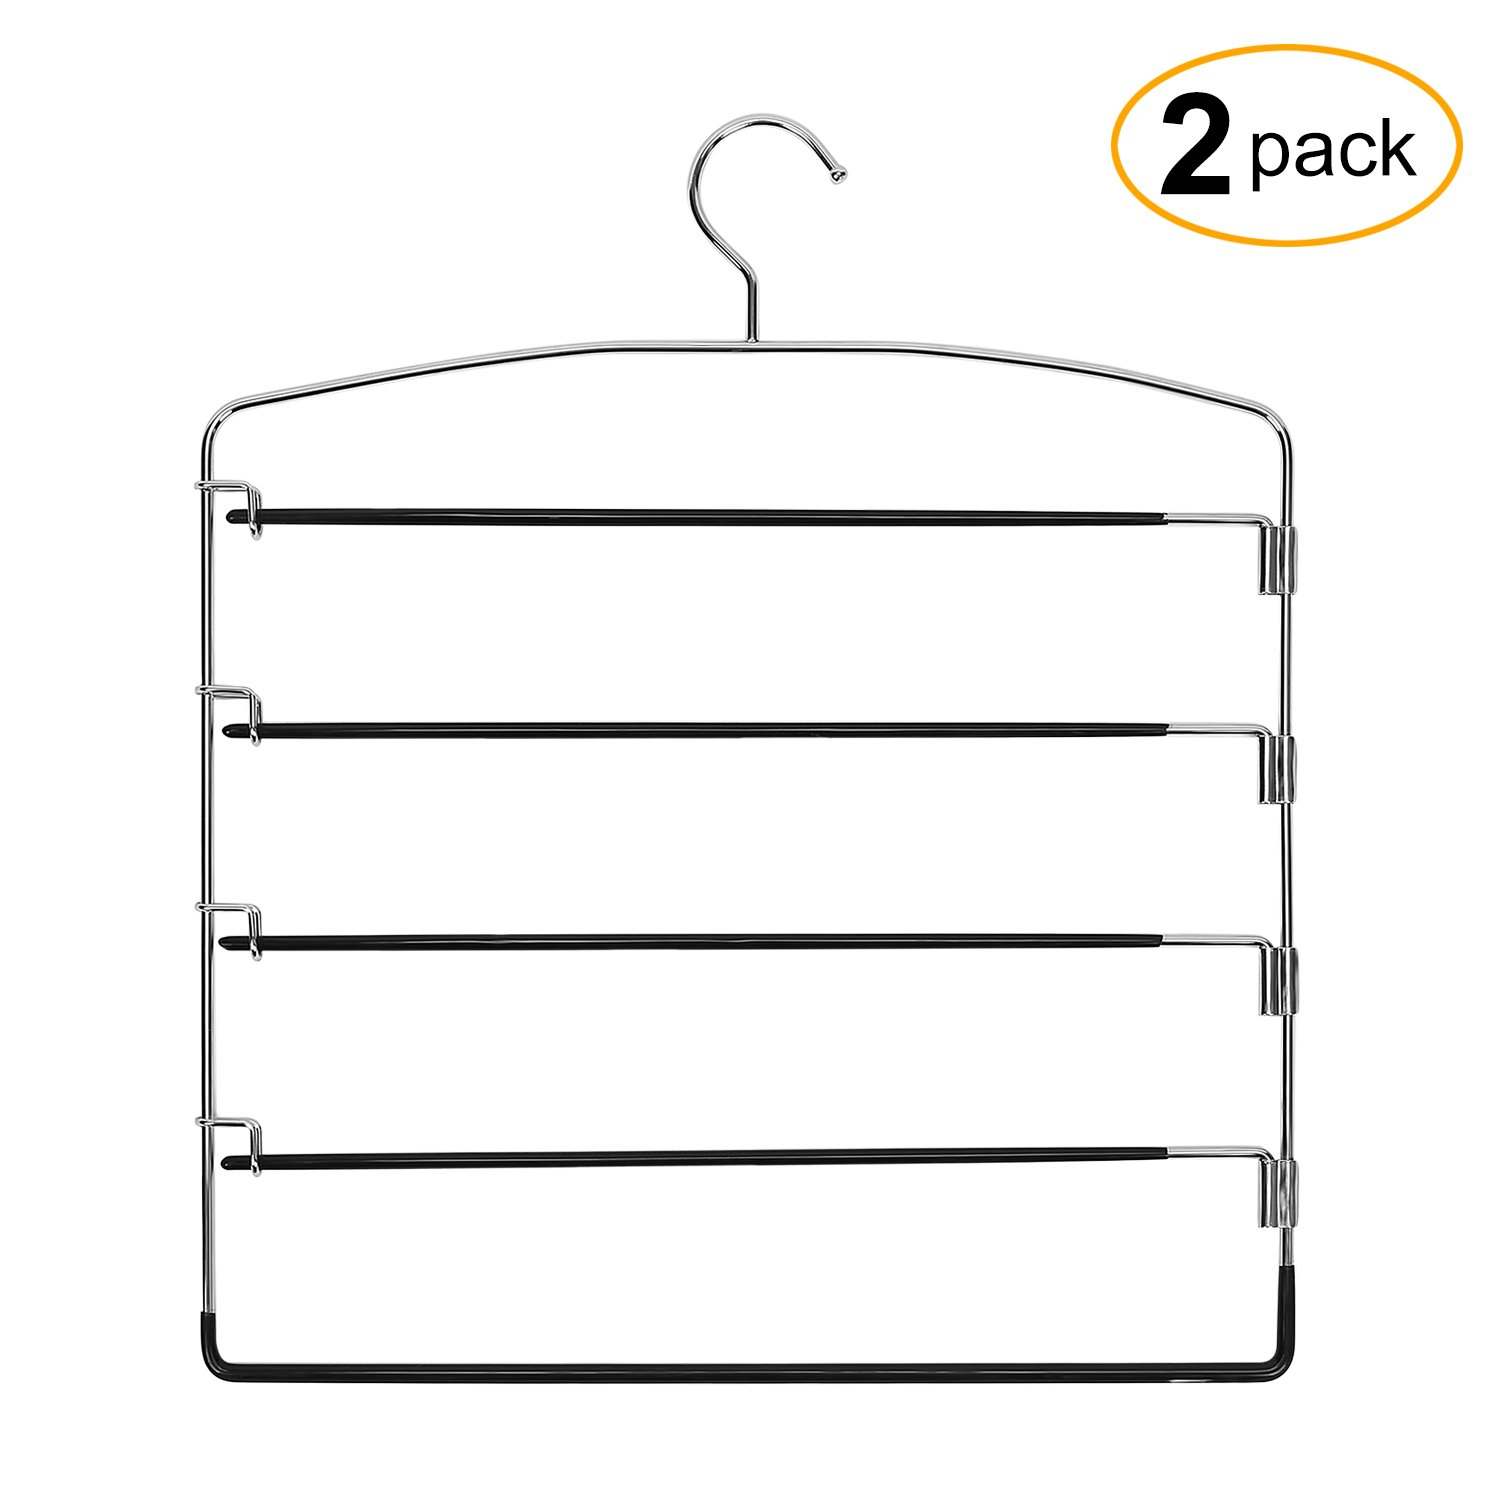 Corodo Black Pants Hangers 2 Pack, No Slip Multi Pant Hanger for Jeans Trousers, Skirts, Scarf, 5 Tier Swing Arm Pant Rack product image